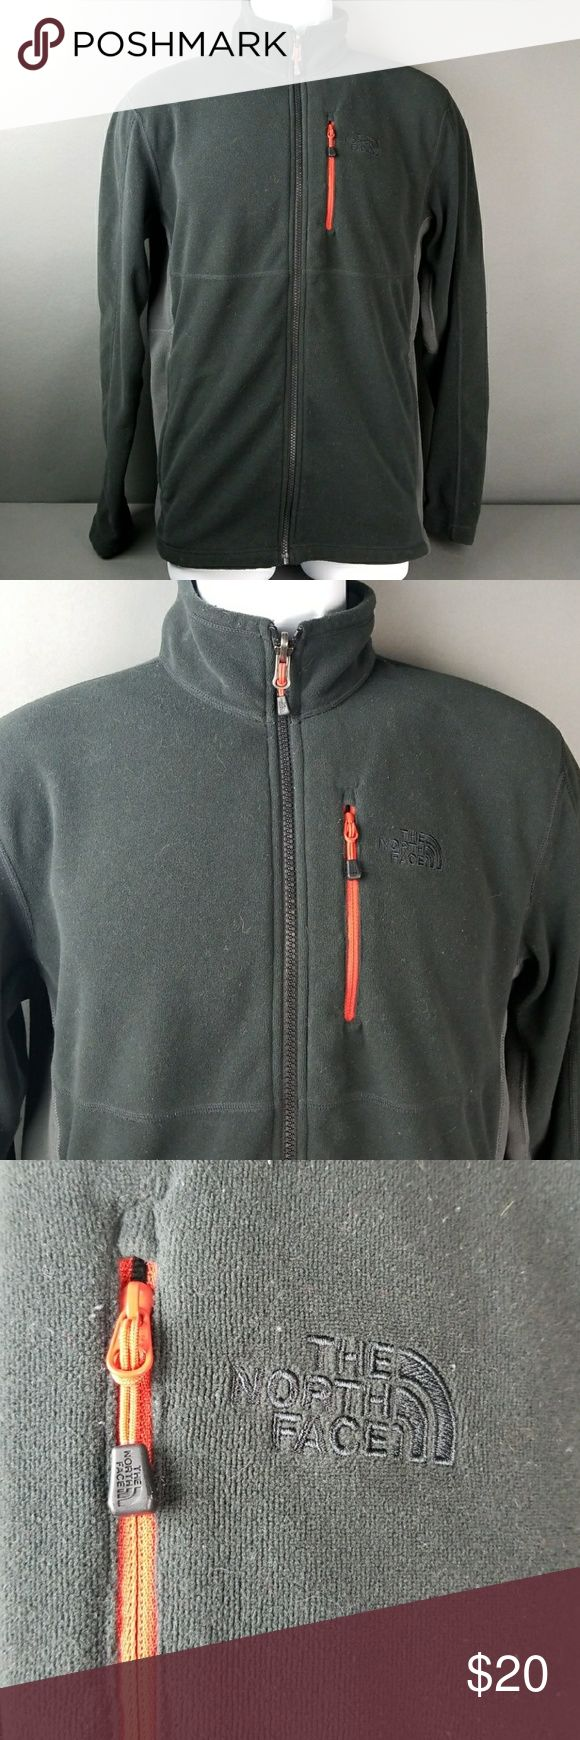 The North Face full zip Mens Jacket Pre owned in ok good condition. I put this on my faux blanket and it picked up all the blanket hair. Can be rehashed and should come out. Still great jacket. Size M The North Face Jackets & Coats